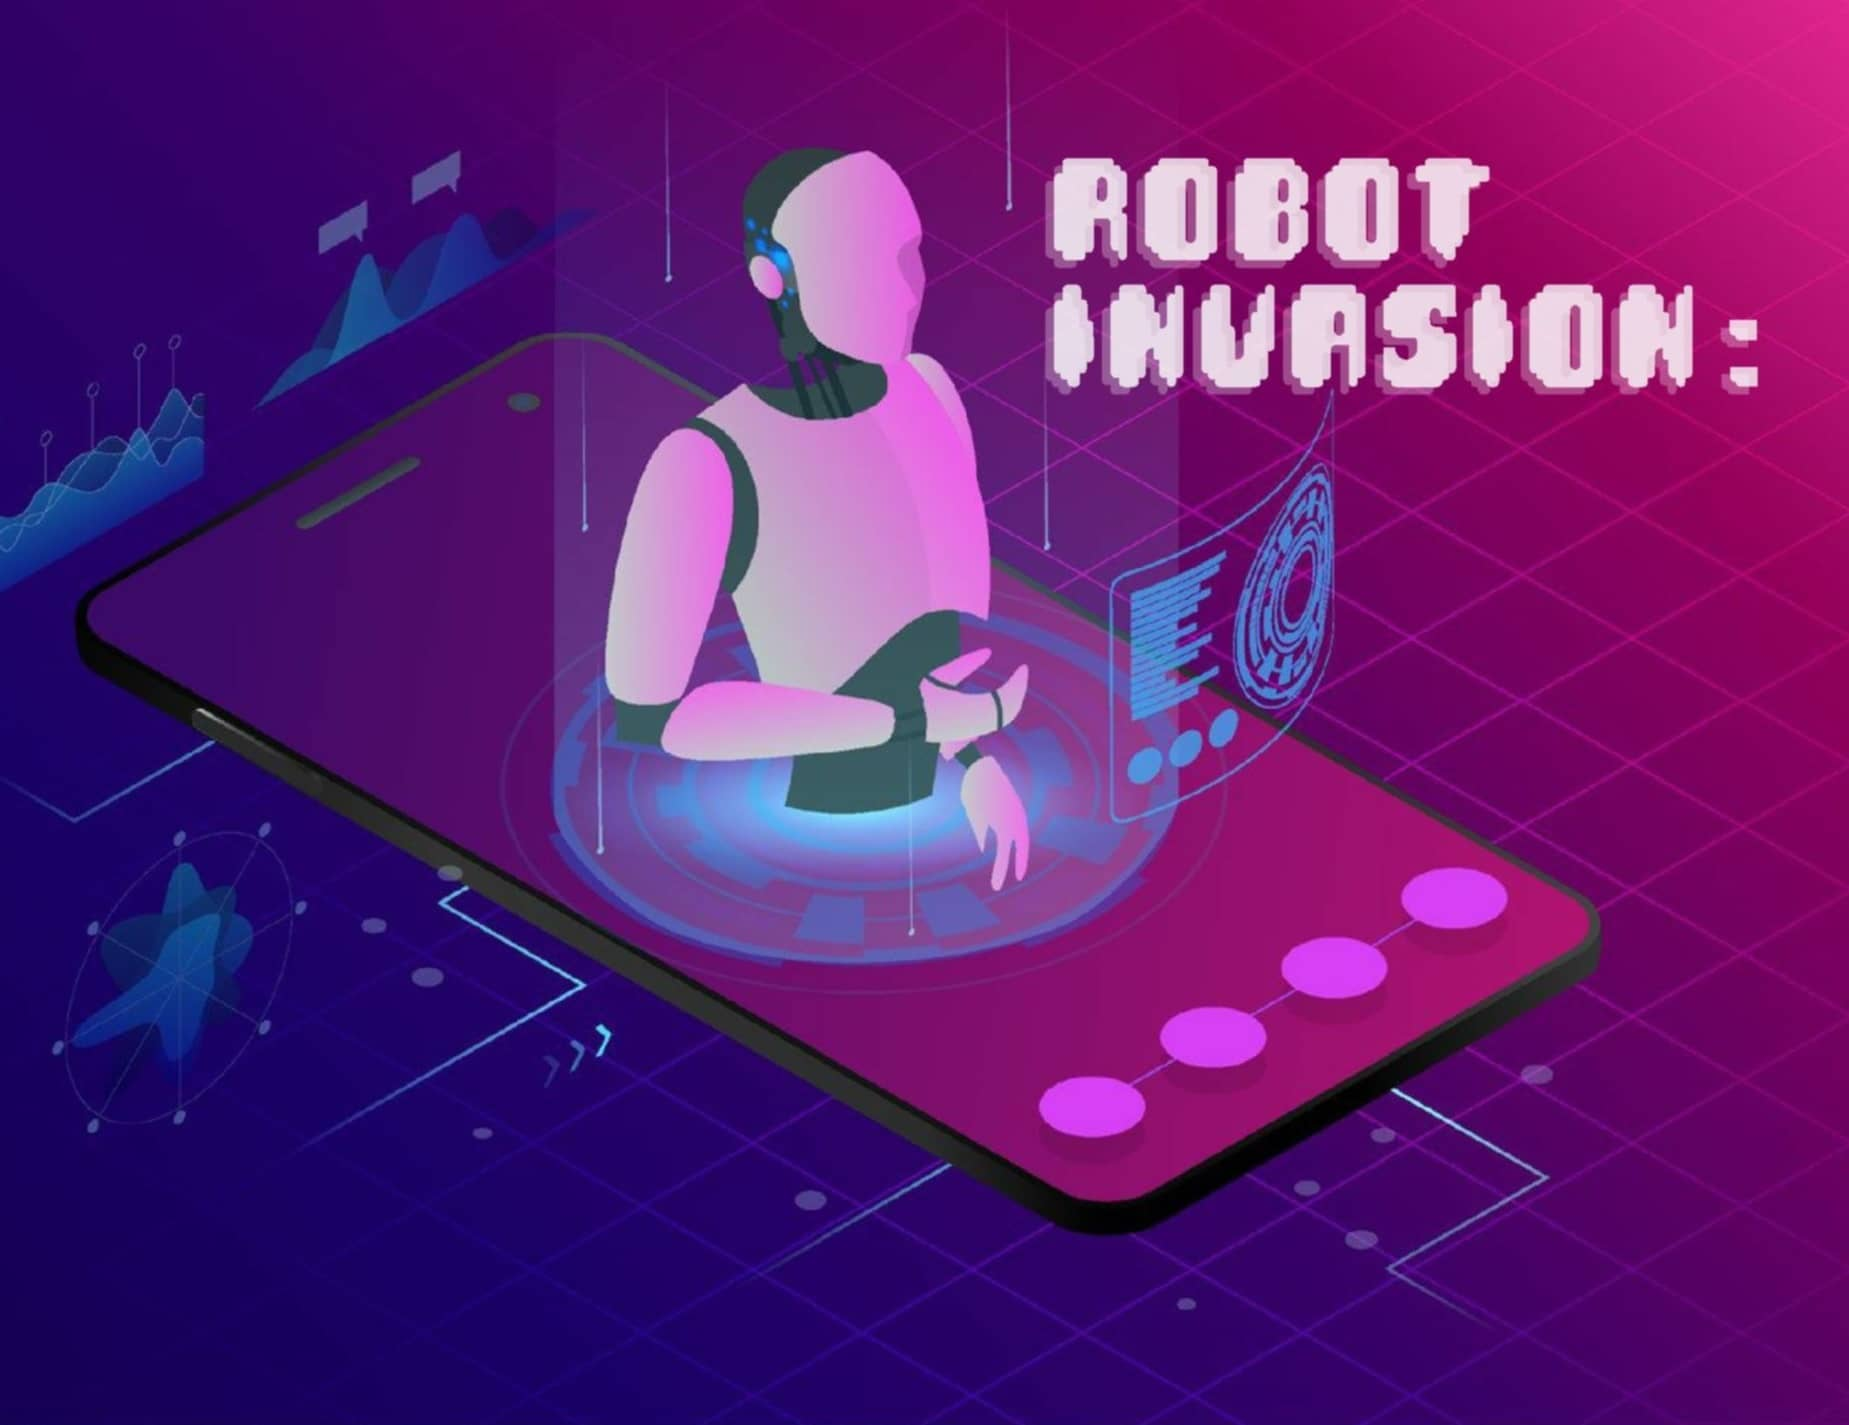 ROBOT INVASION: THE CONVERGENCE OF TABLETOP GAMES AND TECHNOLOGY